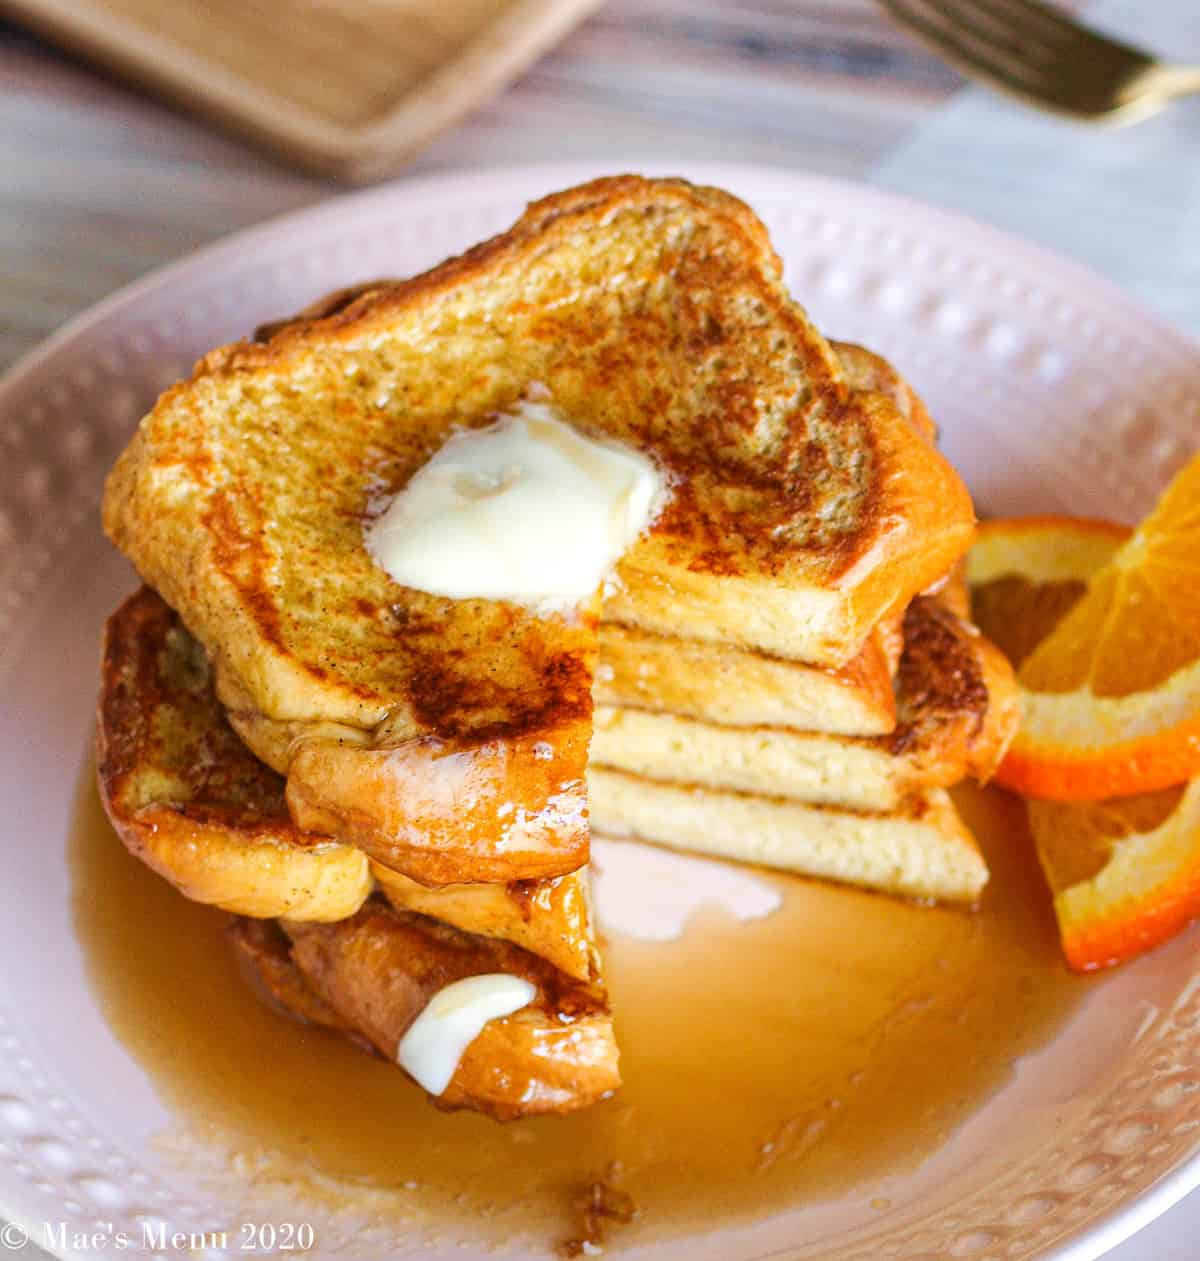 A side angle shot of a large stack of brioche french toast with a wedge taken out